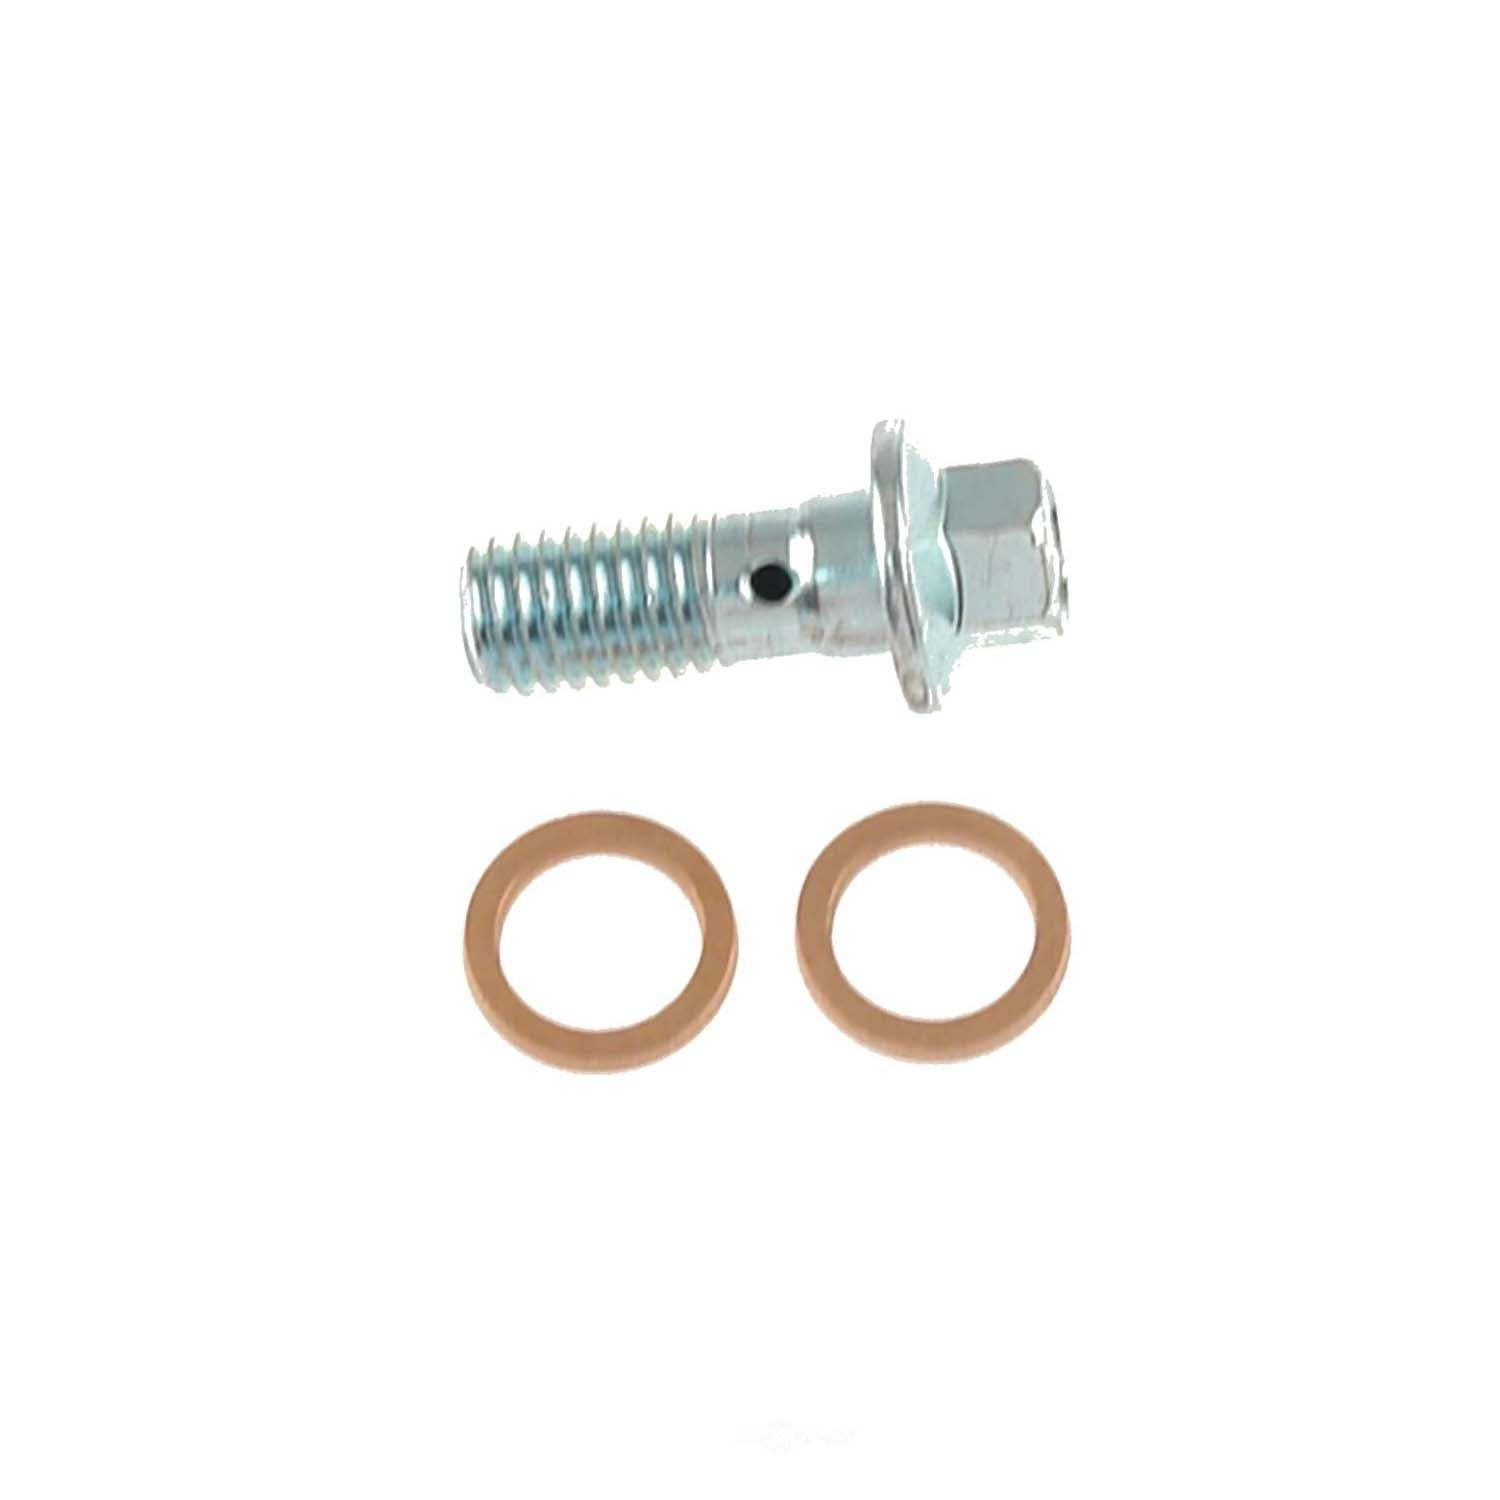 CARLSON QUALITY BRAKE PARTS - Brake Hydraulic Banjo Bolt - CRL H9469-2